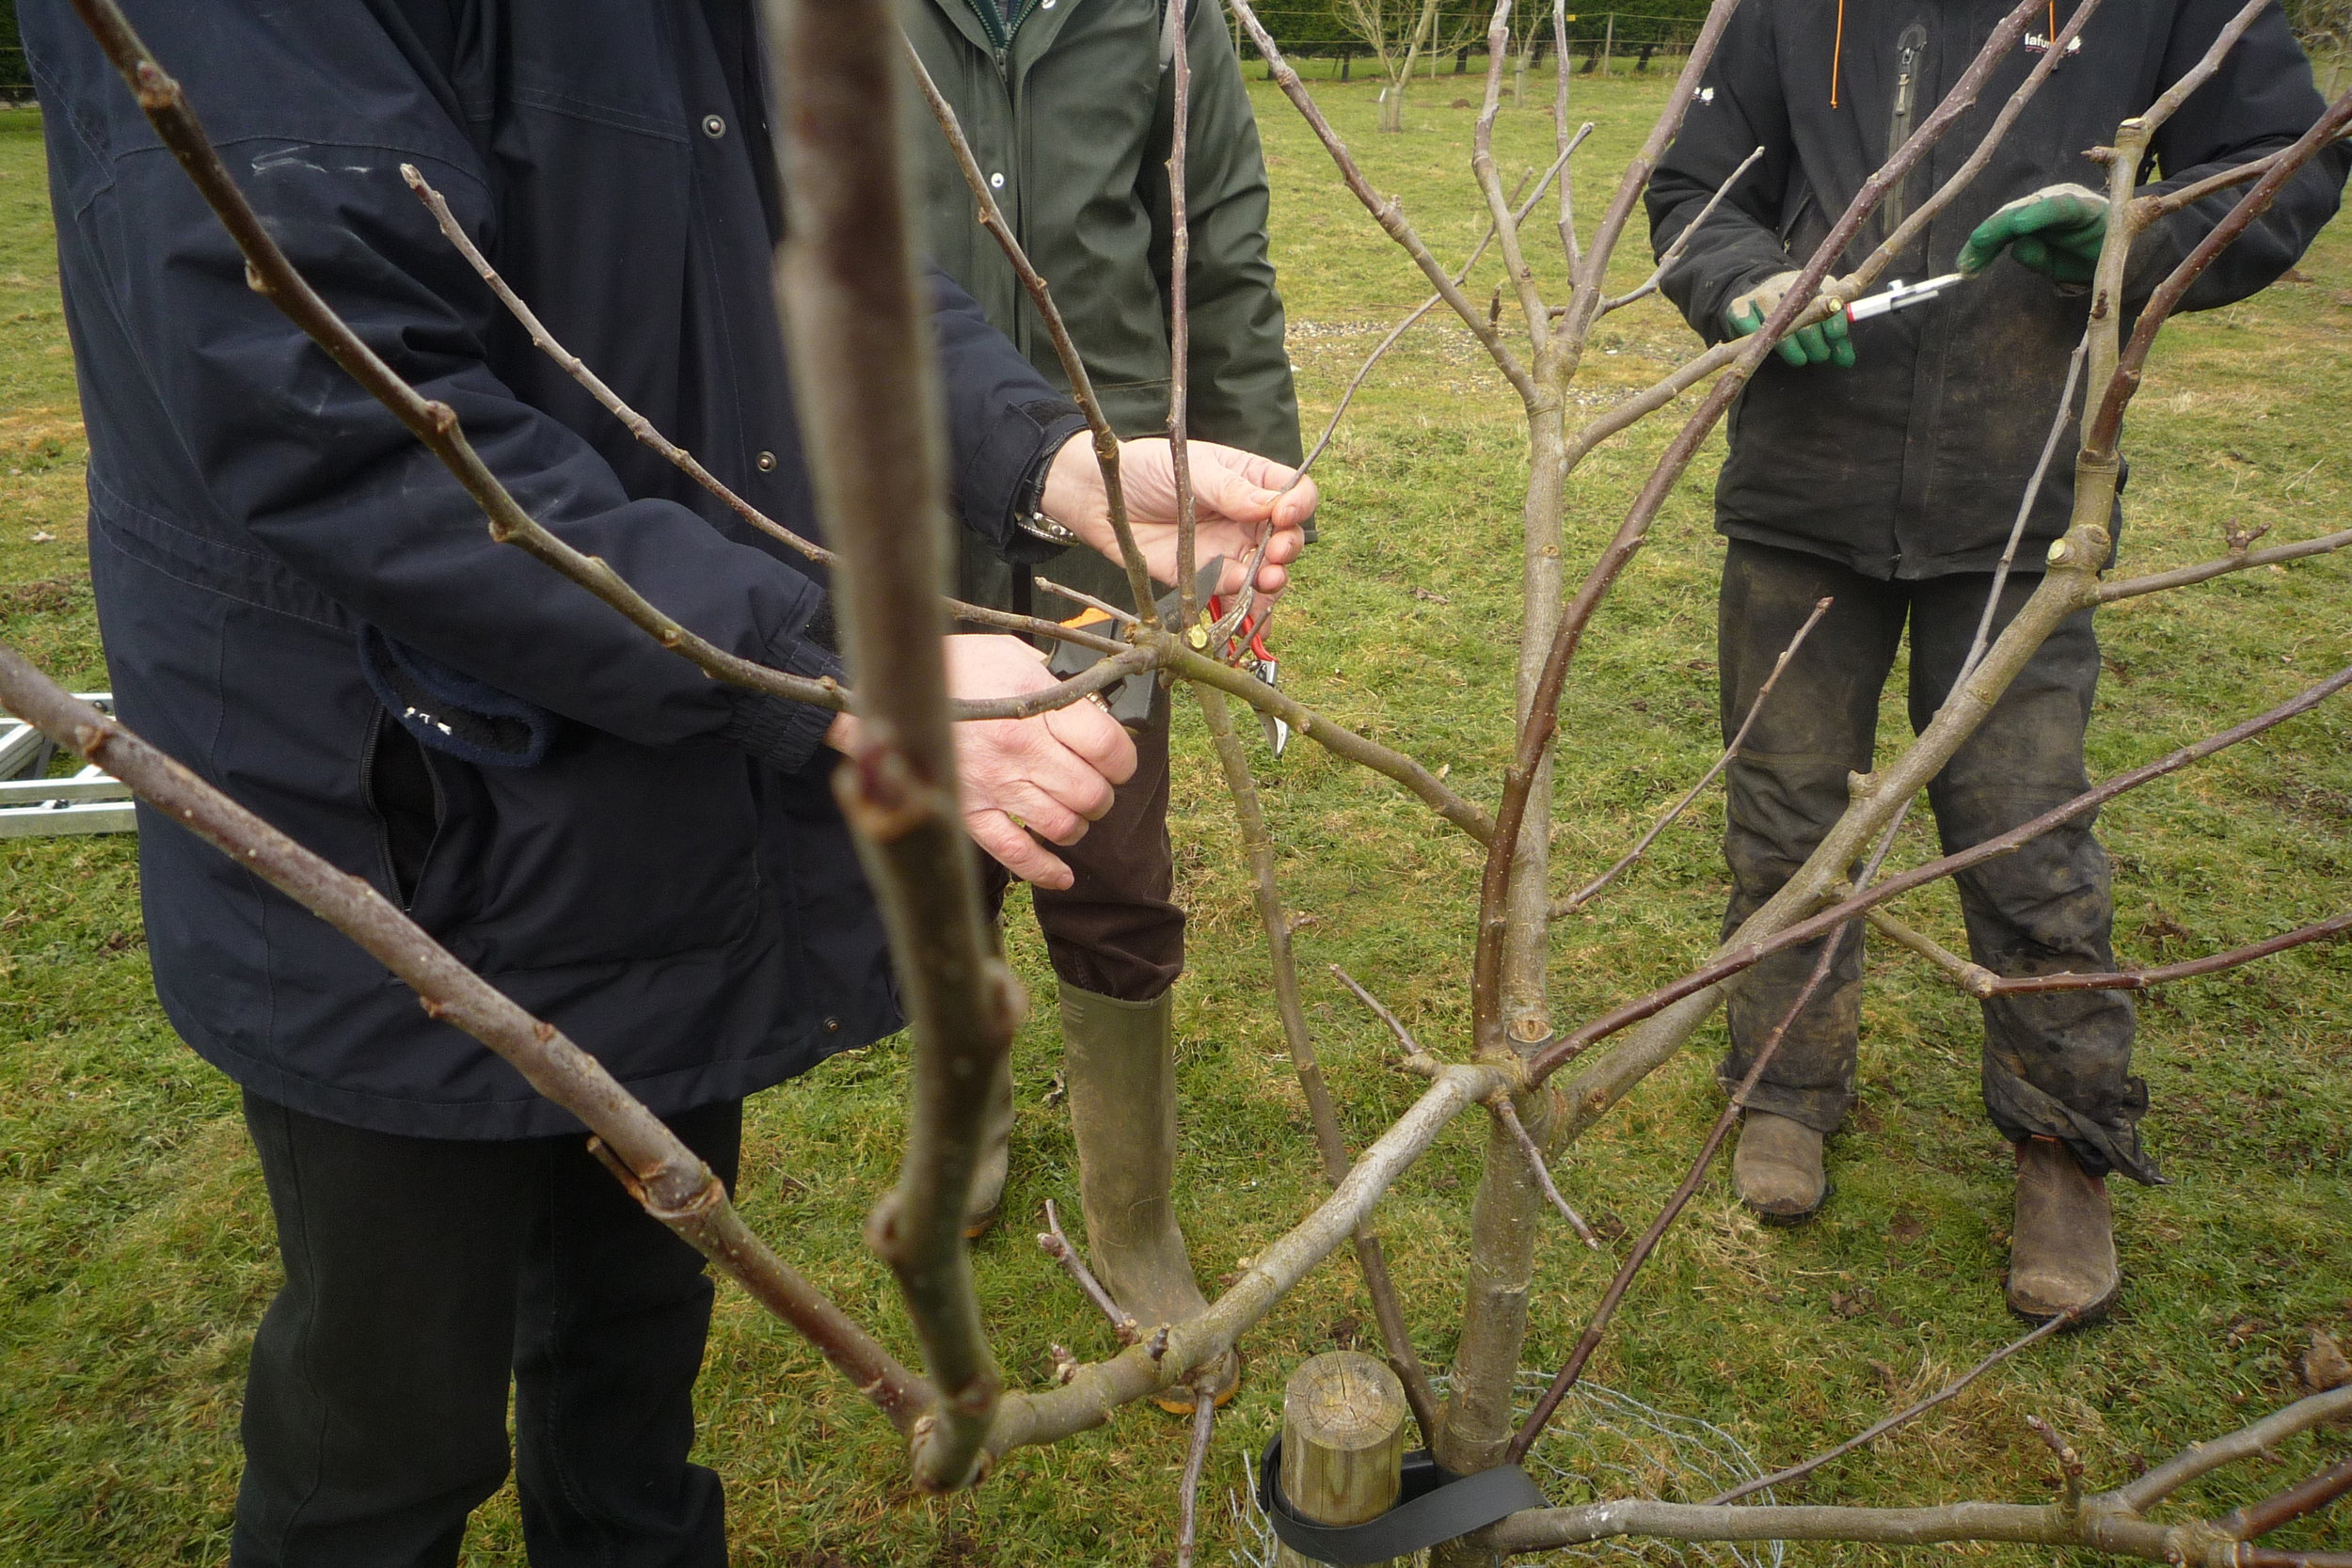 Pruning young apple trees